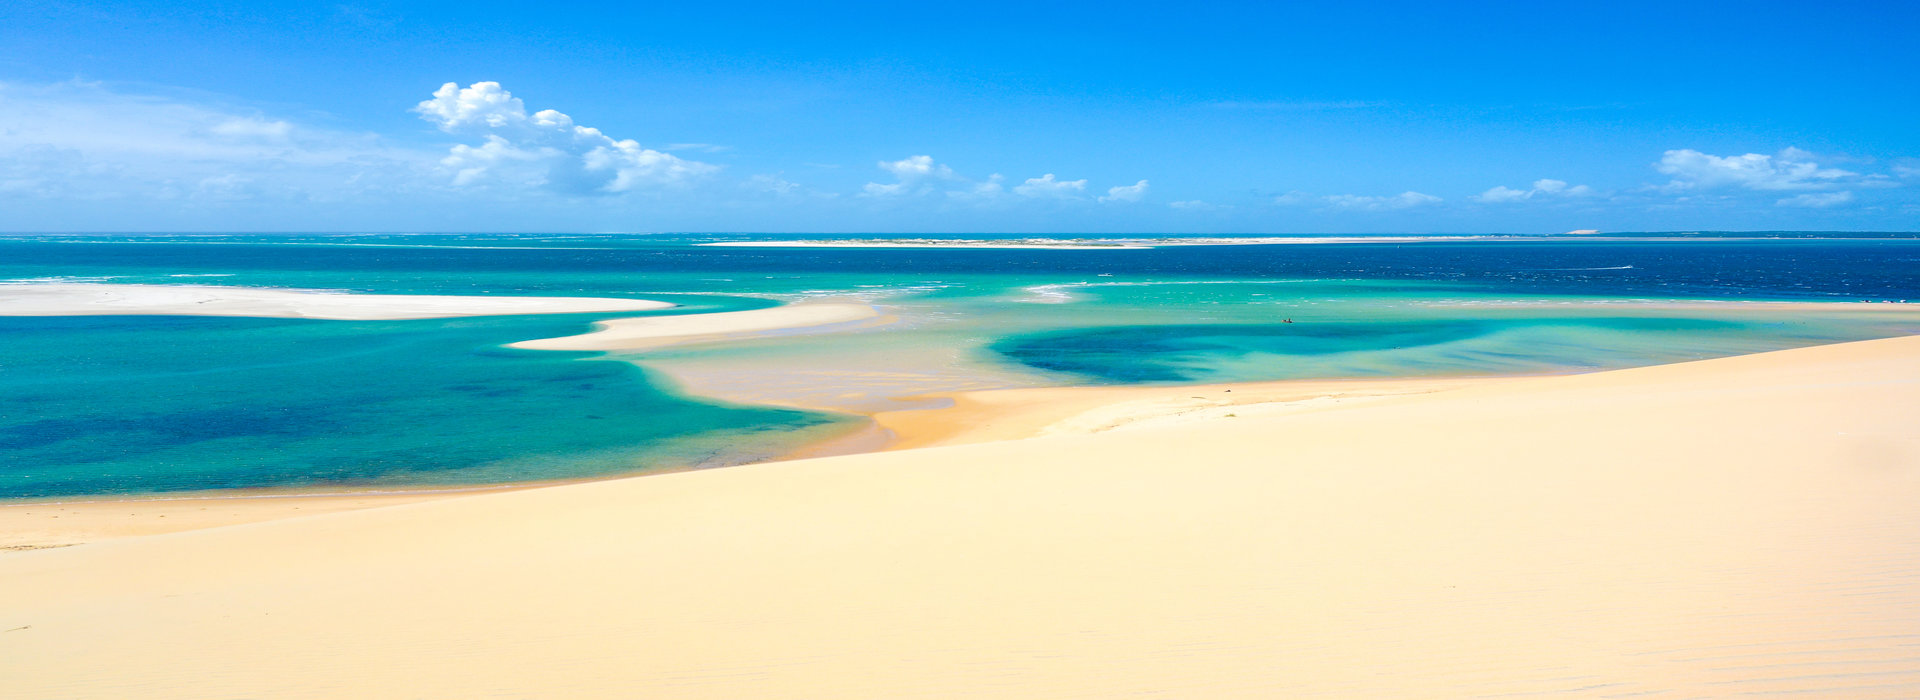 sand_dunes_and_beaches_in_mozambique